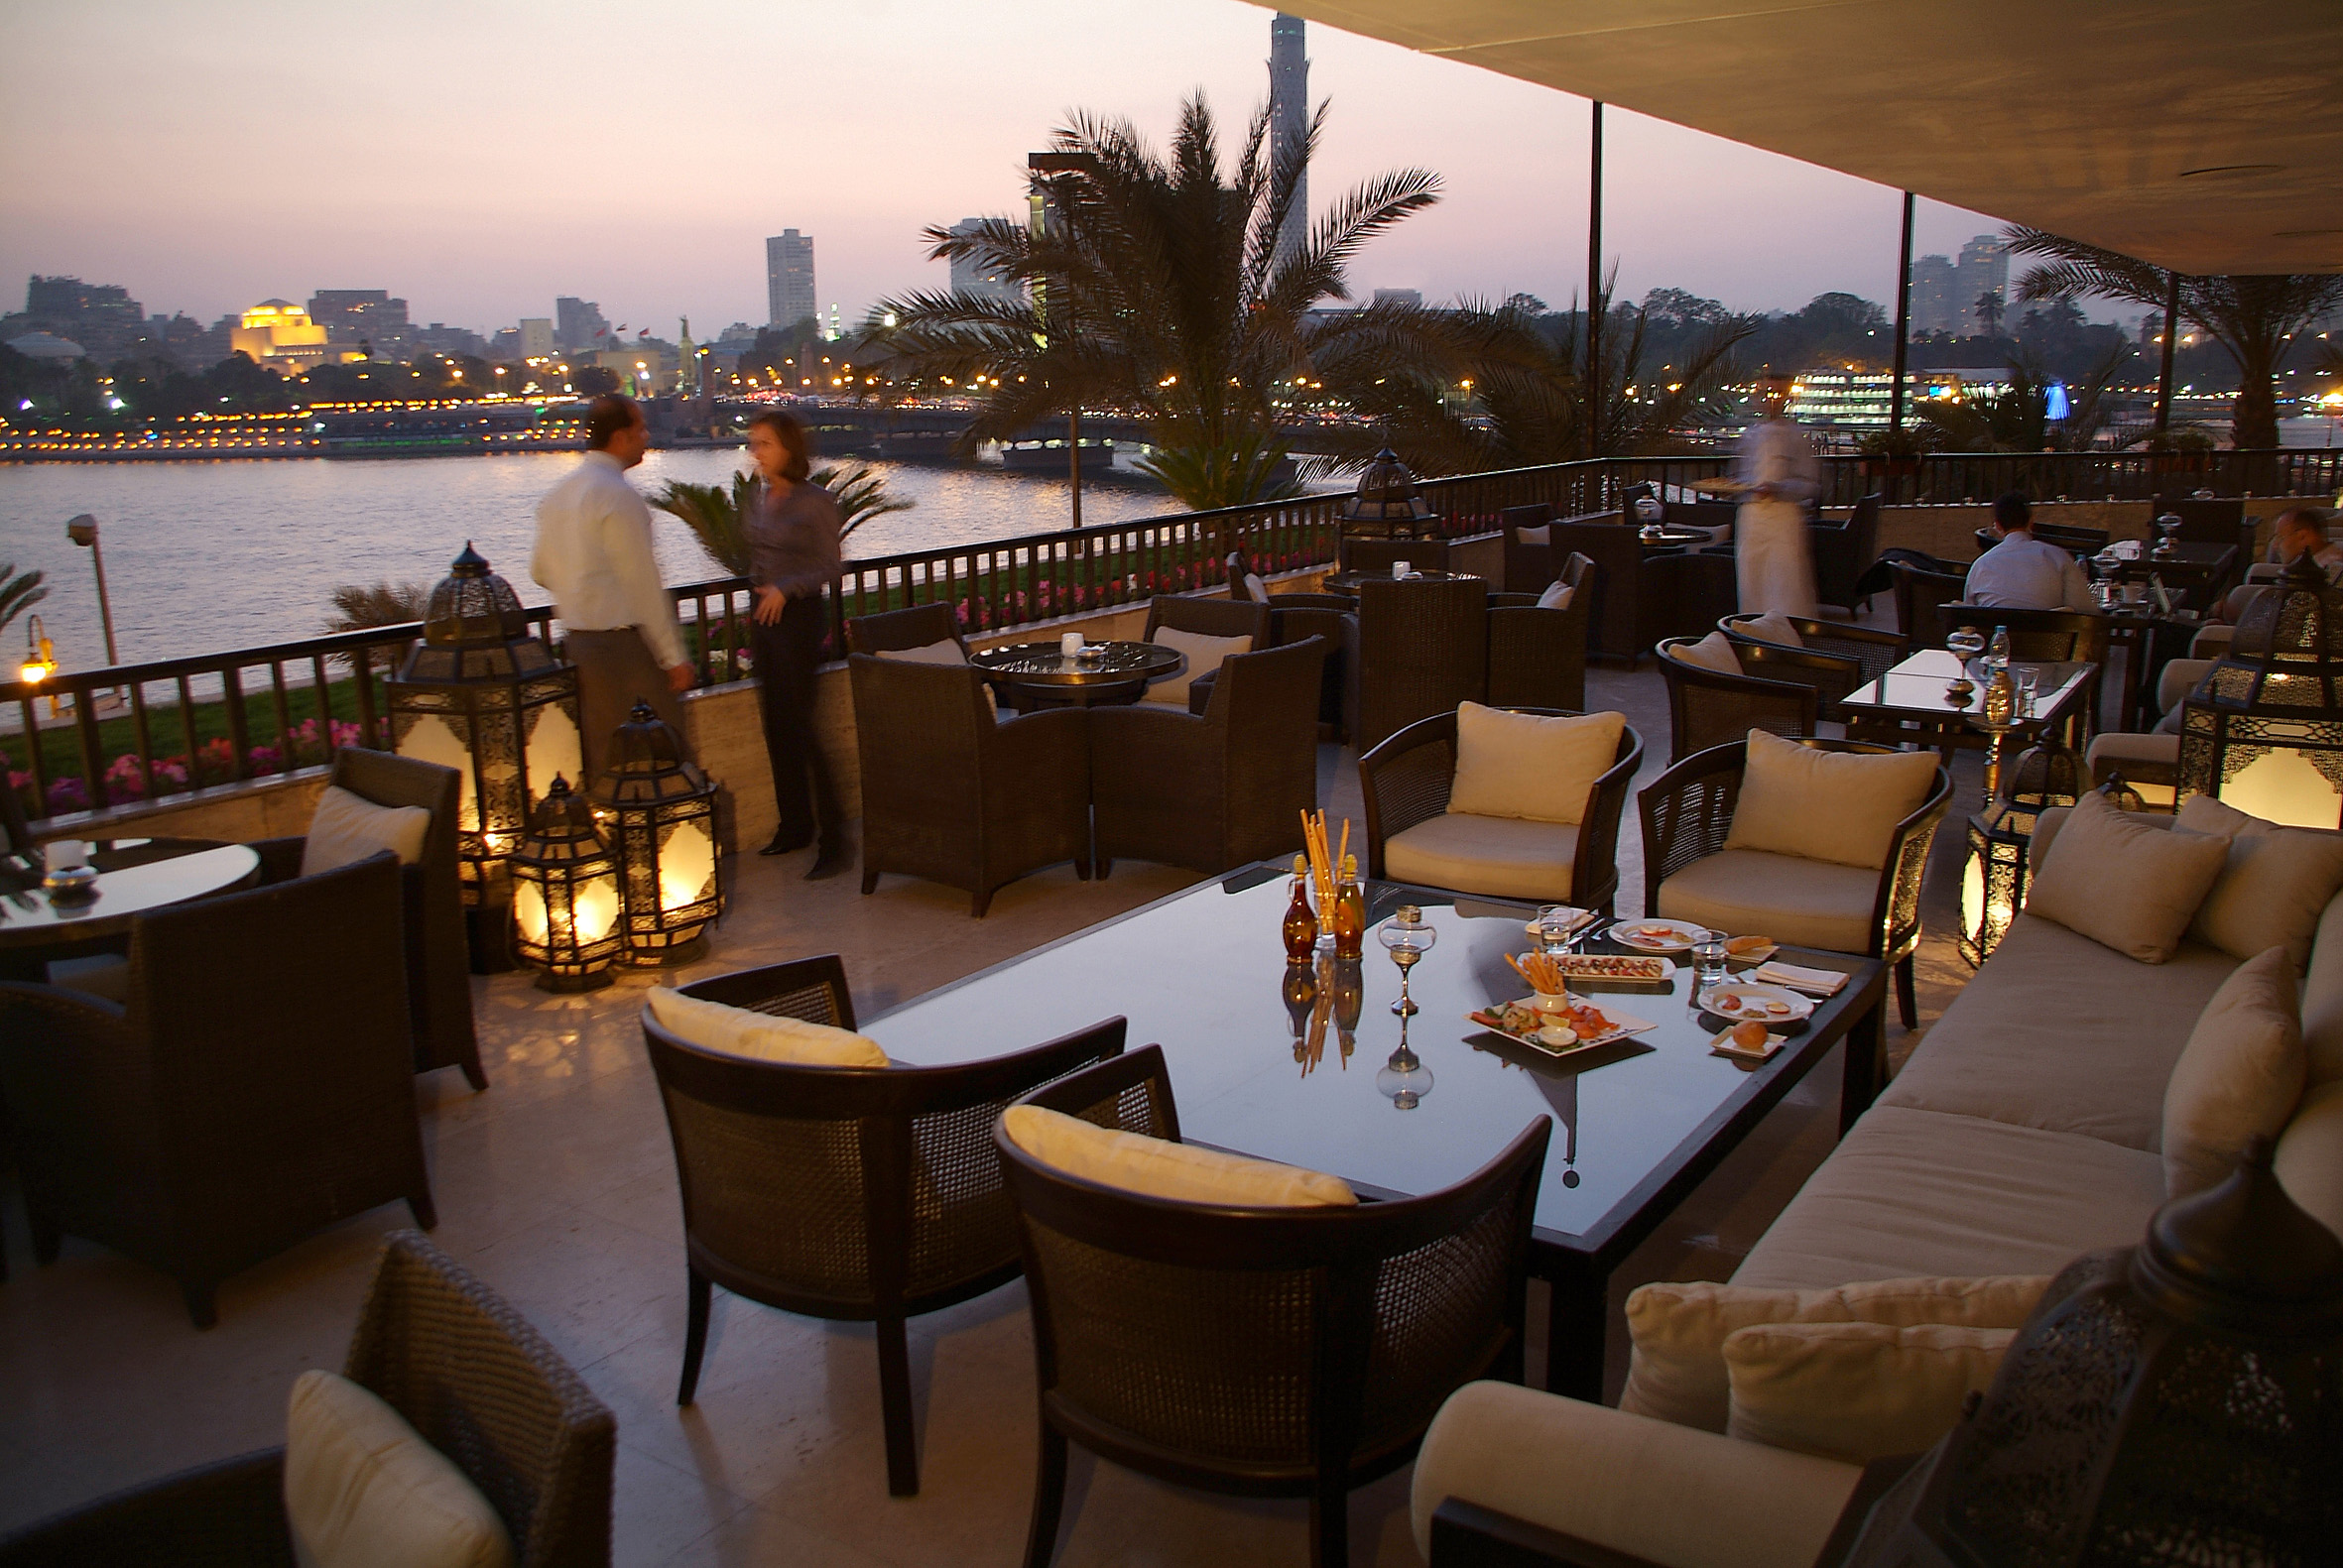 The view from the Pane Vino terrace adds another enchanting dimension (Photo from Semiramis Hotel)